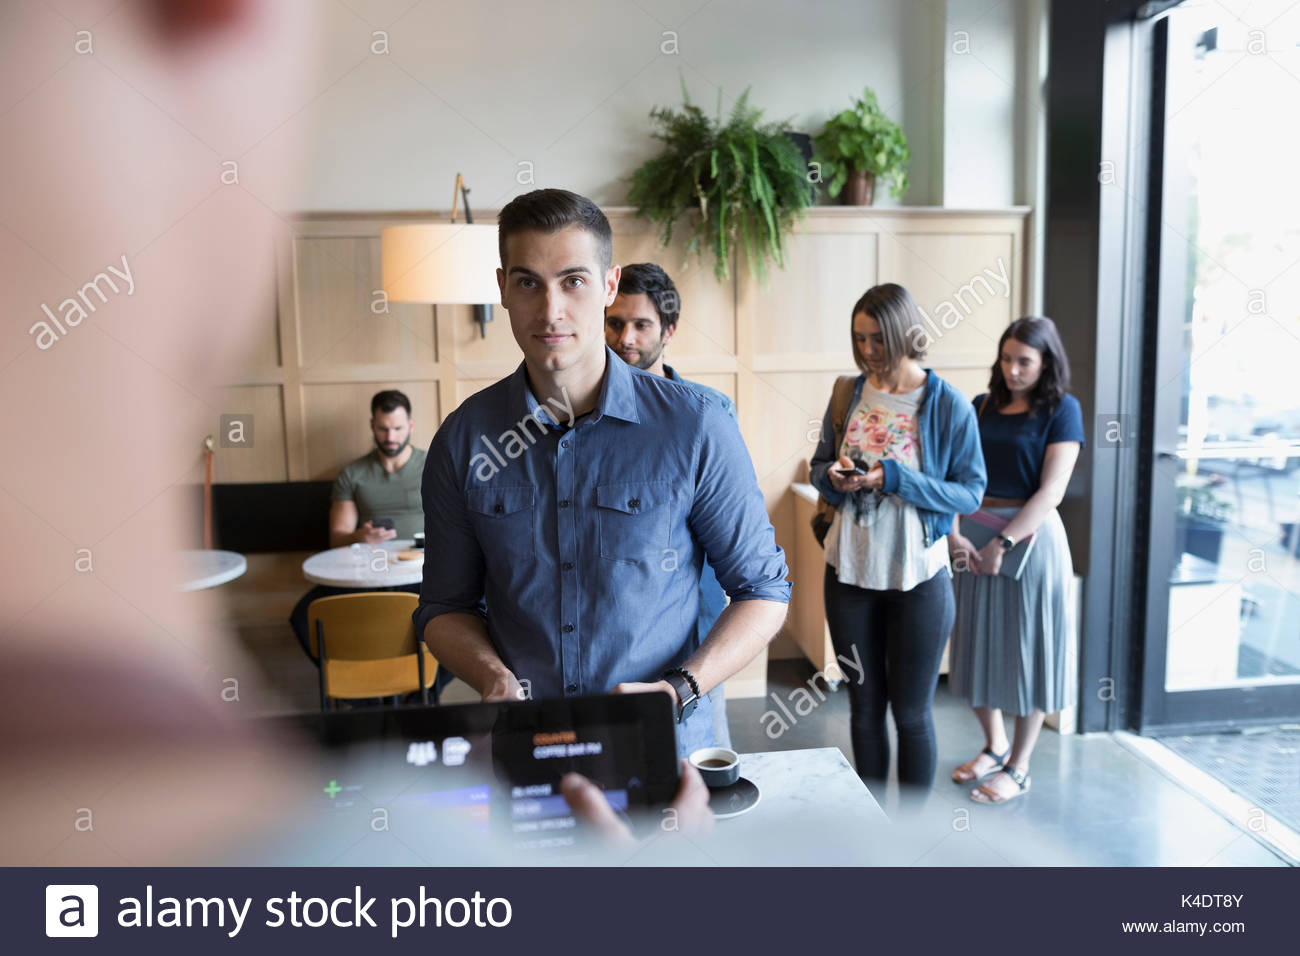 Customer ordering at cafe counter - Stock Image